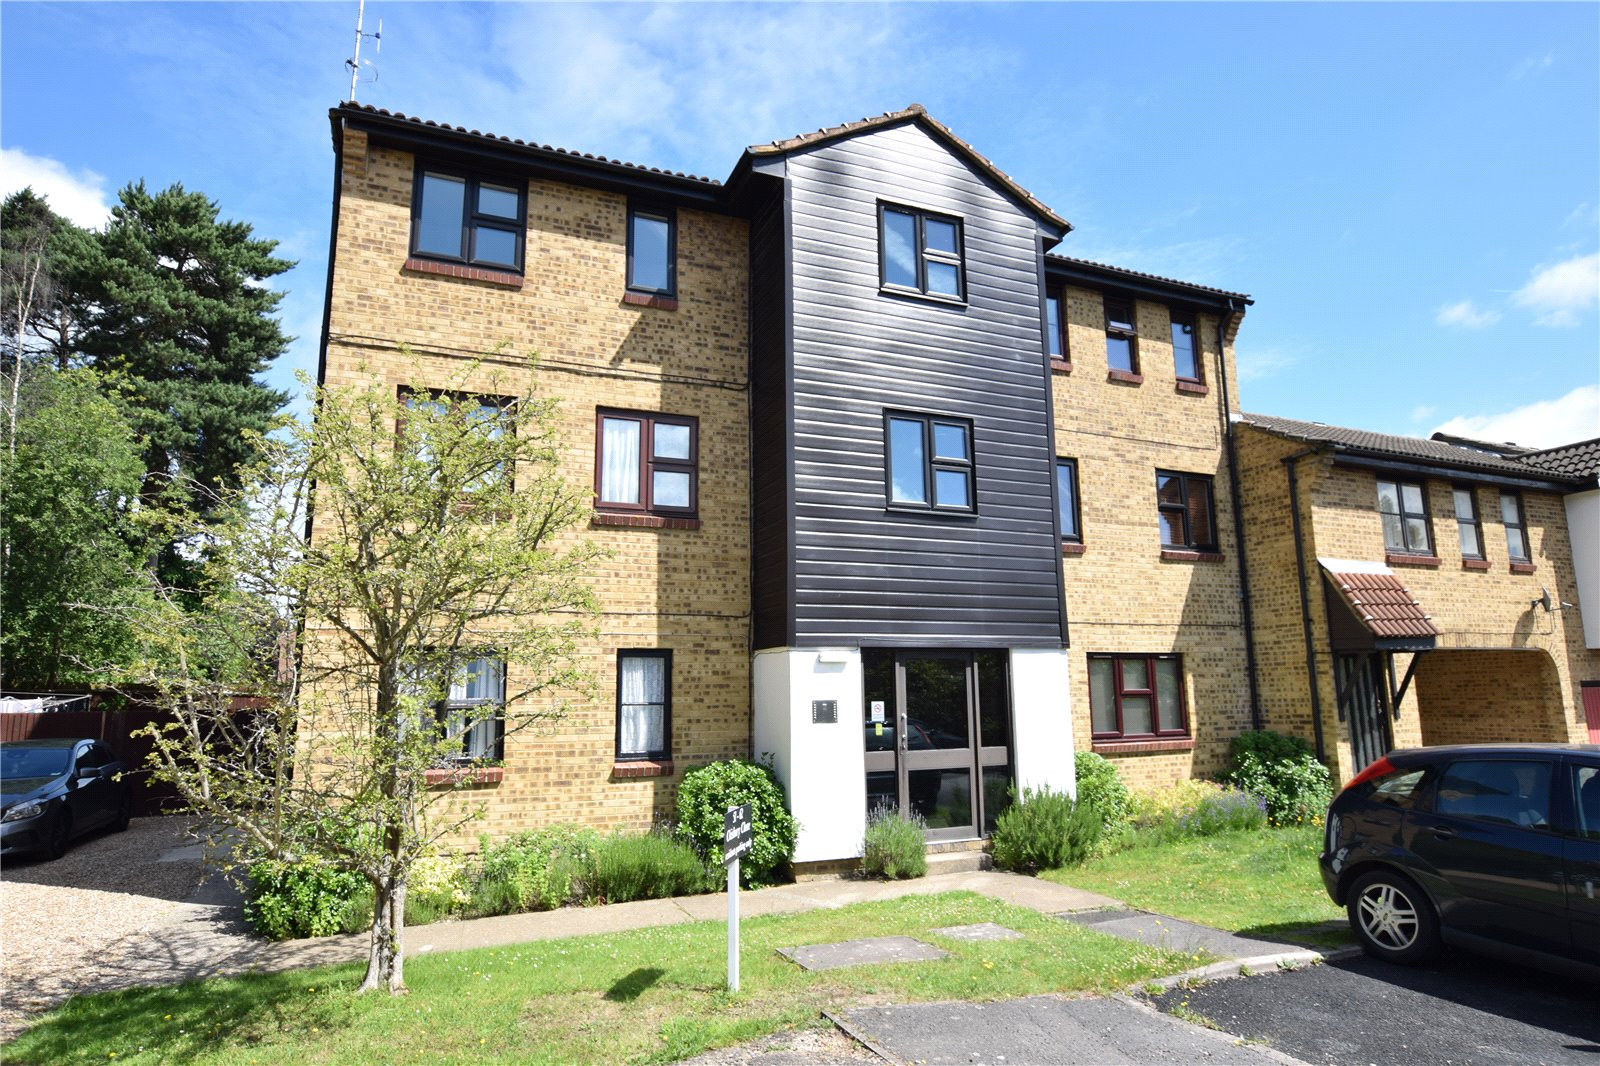 1 Bedroom Studio Flat for sale in Chisbury Close, Bracknell, Berkshire, RG12